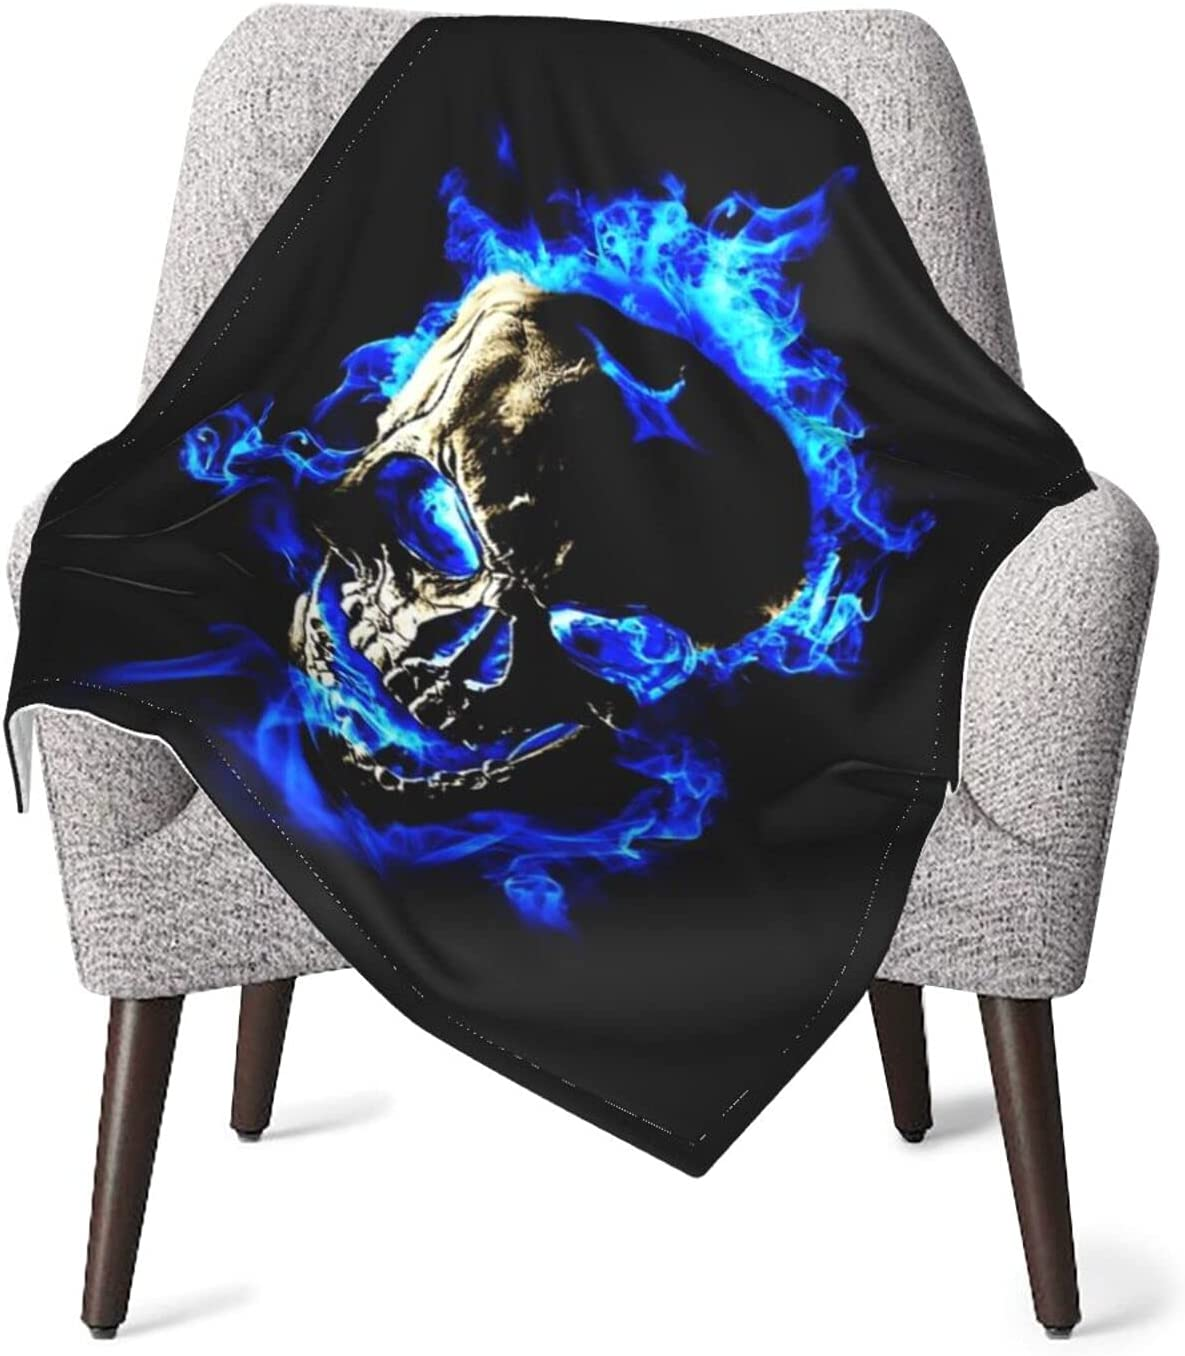 JZDACH Baby Essentials Throw and Over item handling Max 51% OFF Blue Fire Receiving Skull